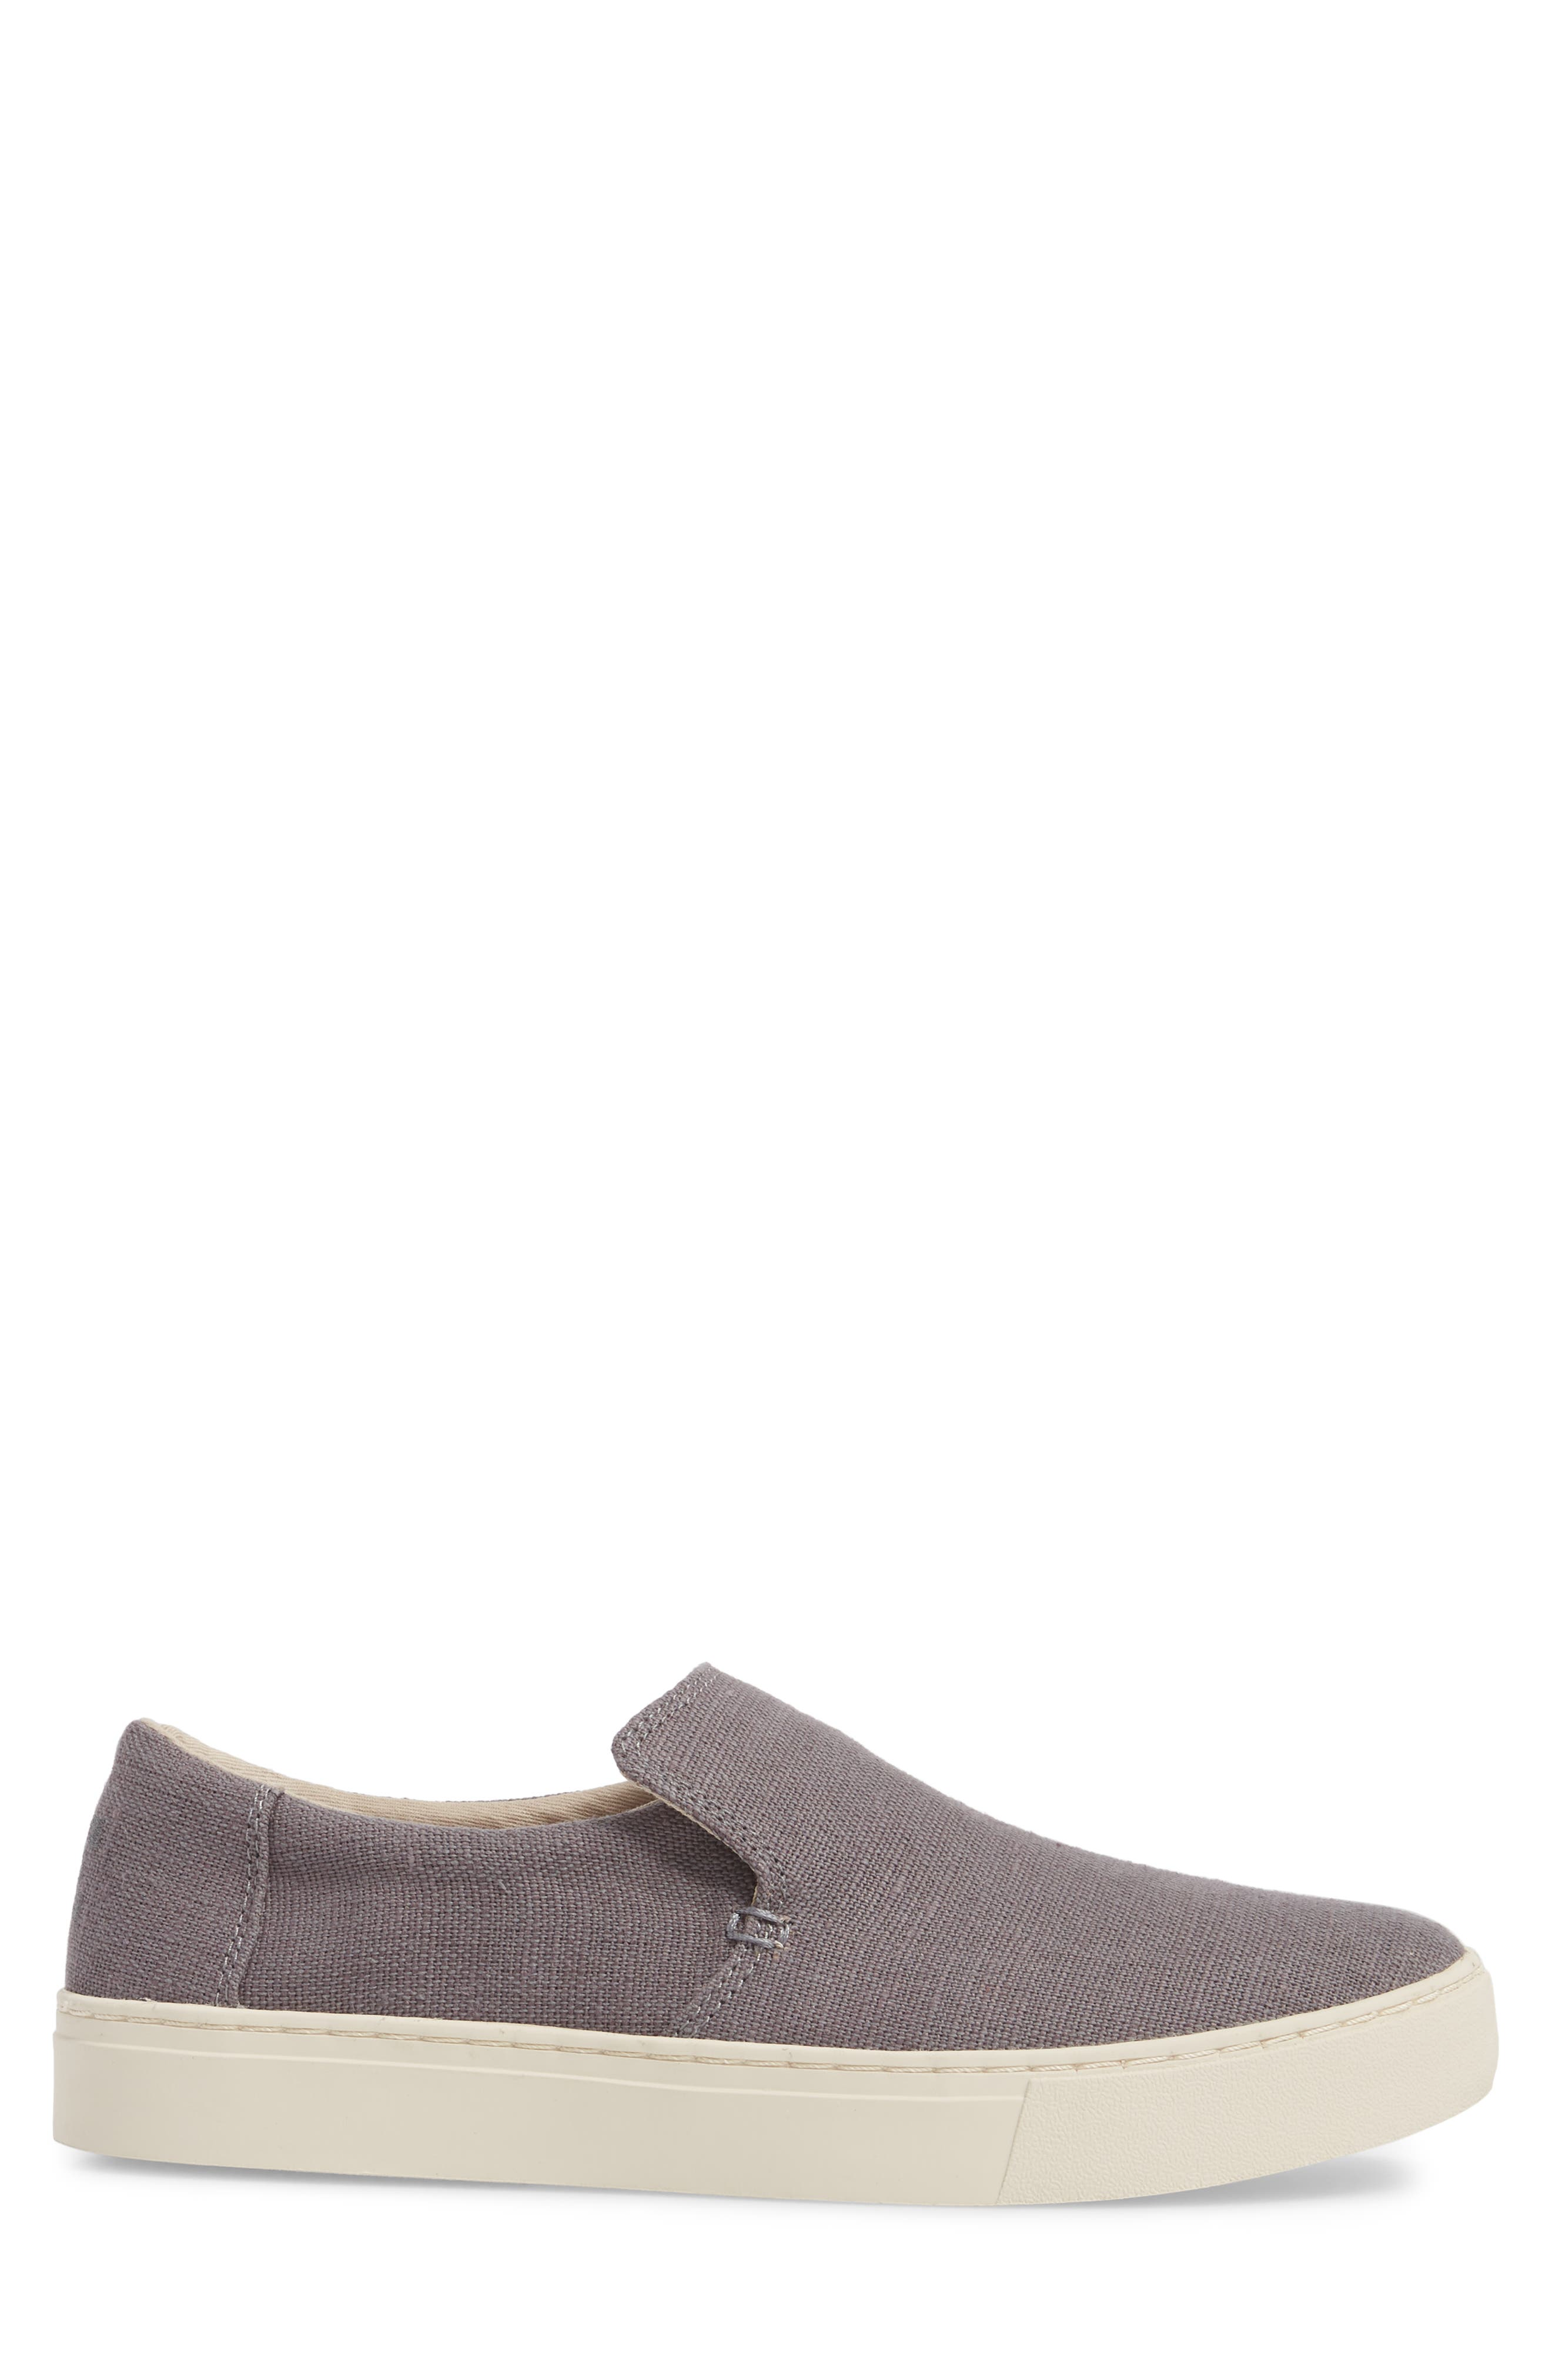 Loma Slip-On Sneaker,                             Alternate thumbnail 3, color,                             SHADE HERITAGE CANVAS